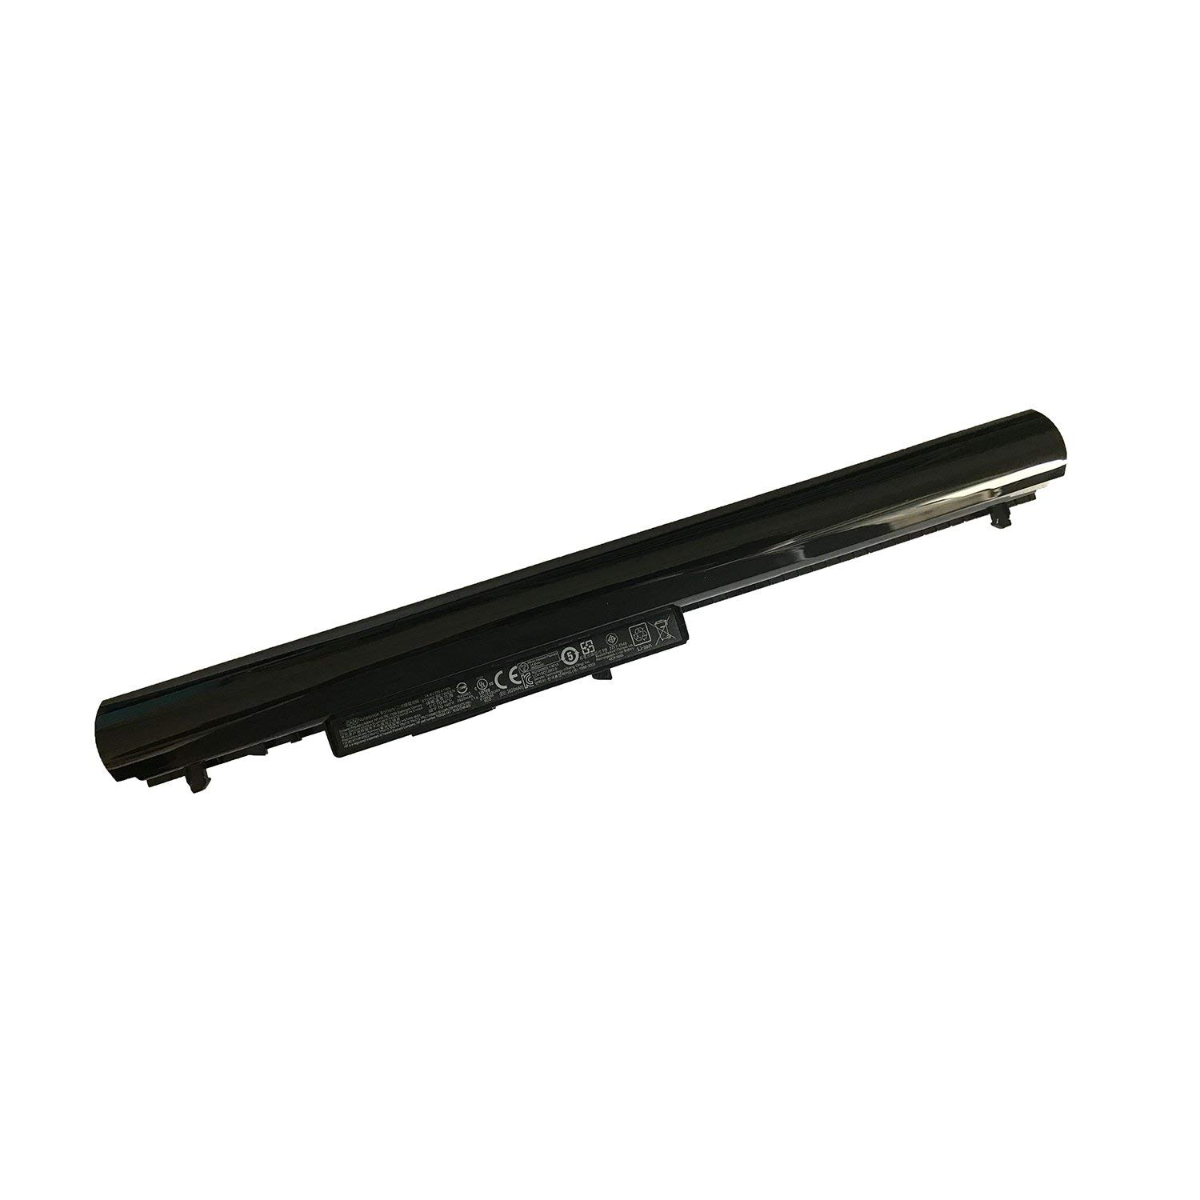 Μπαταρία Laptop - Battery for HP 15-G204NV 15-G204UR 15-G205AU 15-G205AX 15-G205NC 15-G205NG 15-G205NIA 15-G205NM 15-G205NT OEM Υψηλής ποιότητας (Κωδ.1-BAT0002)